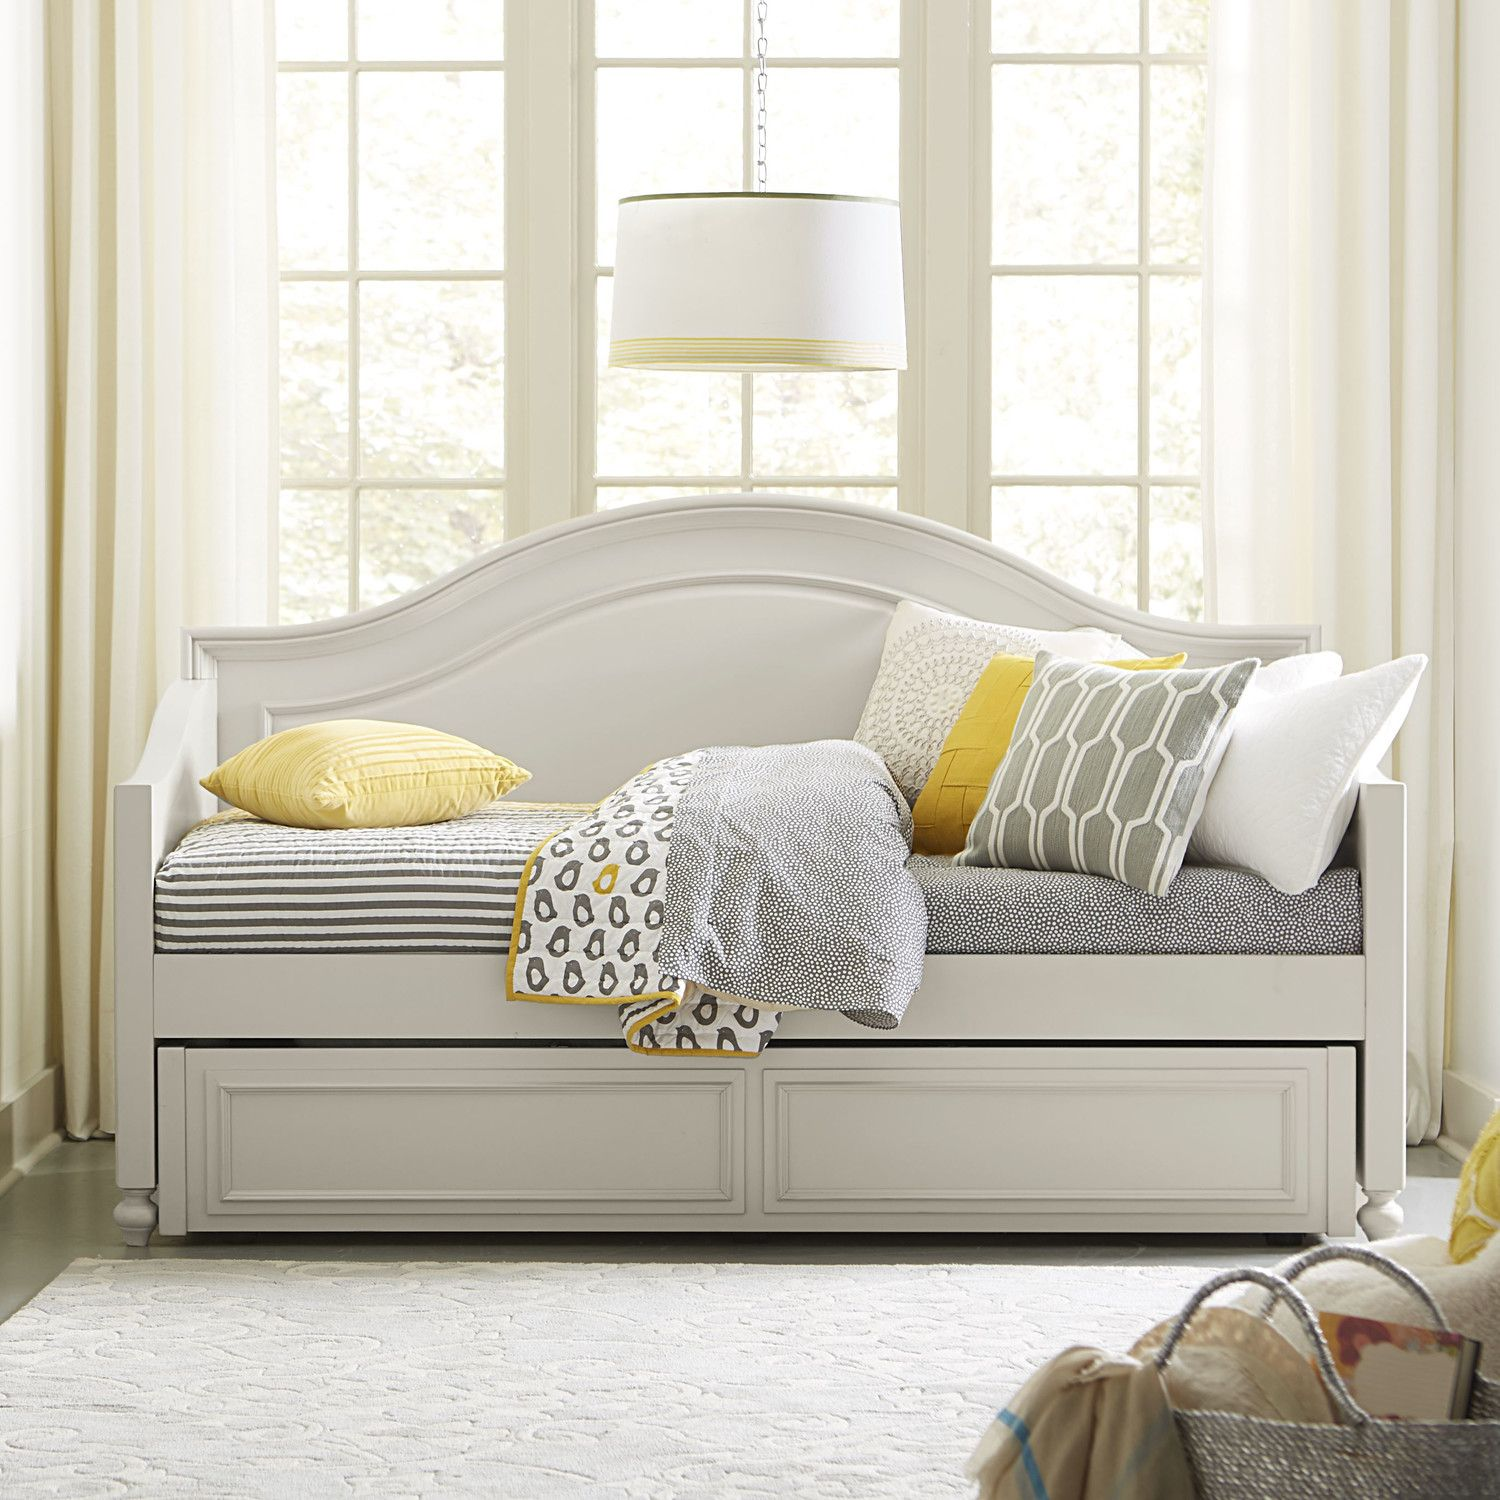 Daybed With Trundle Nursery Decoracion Recamara